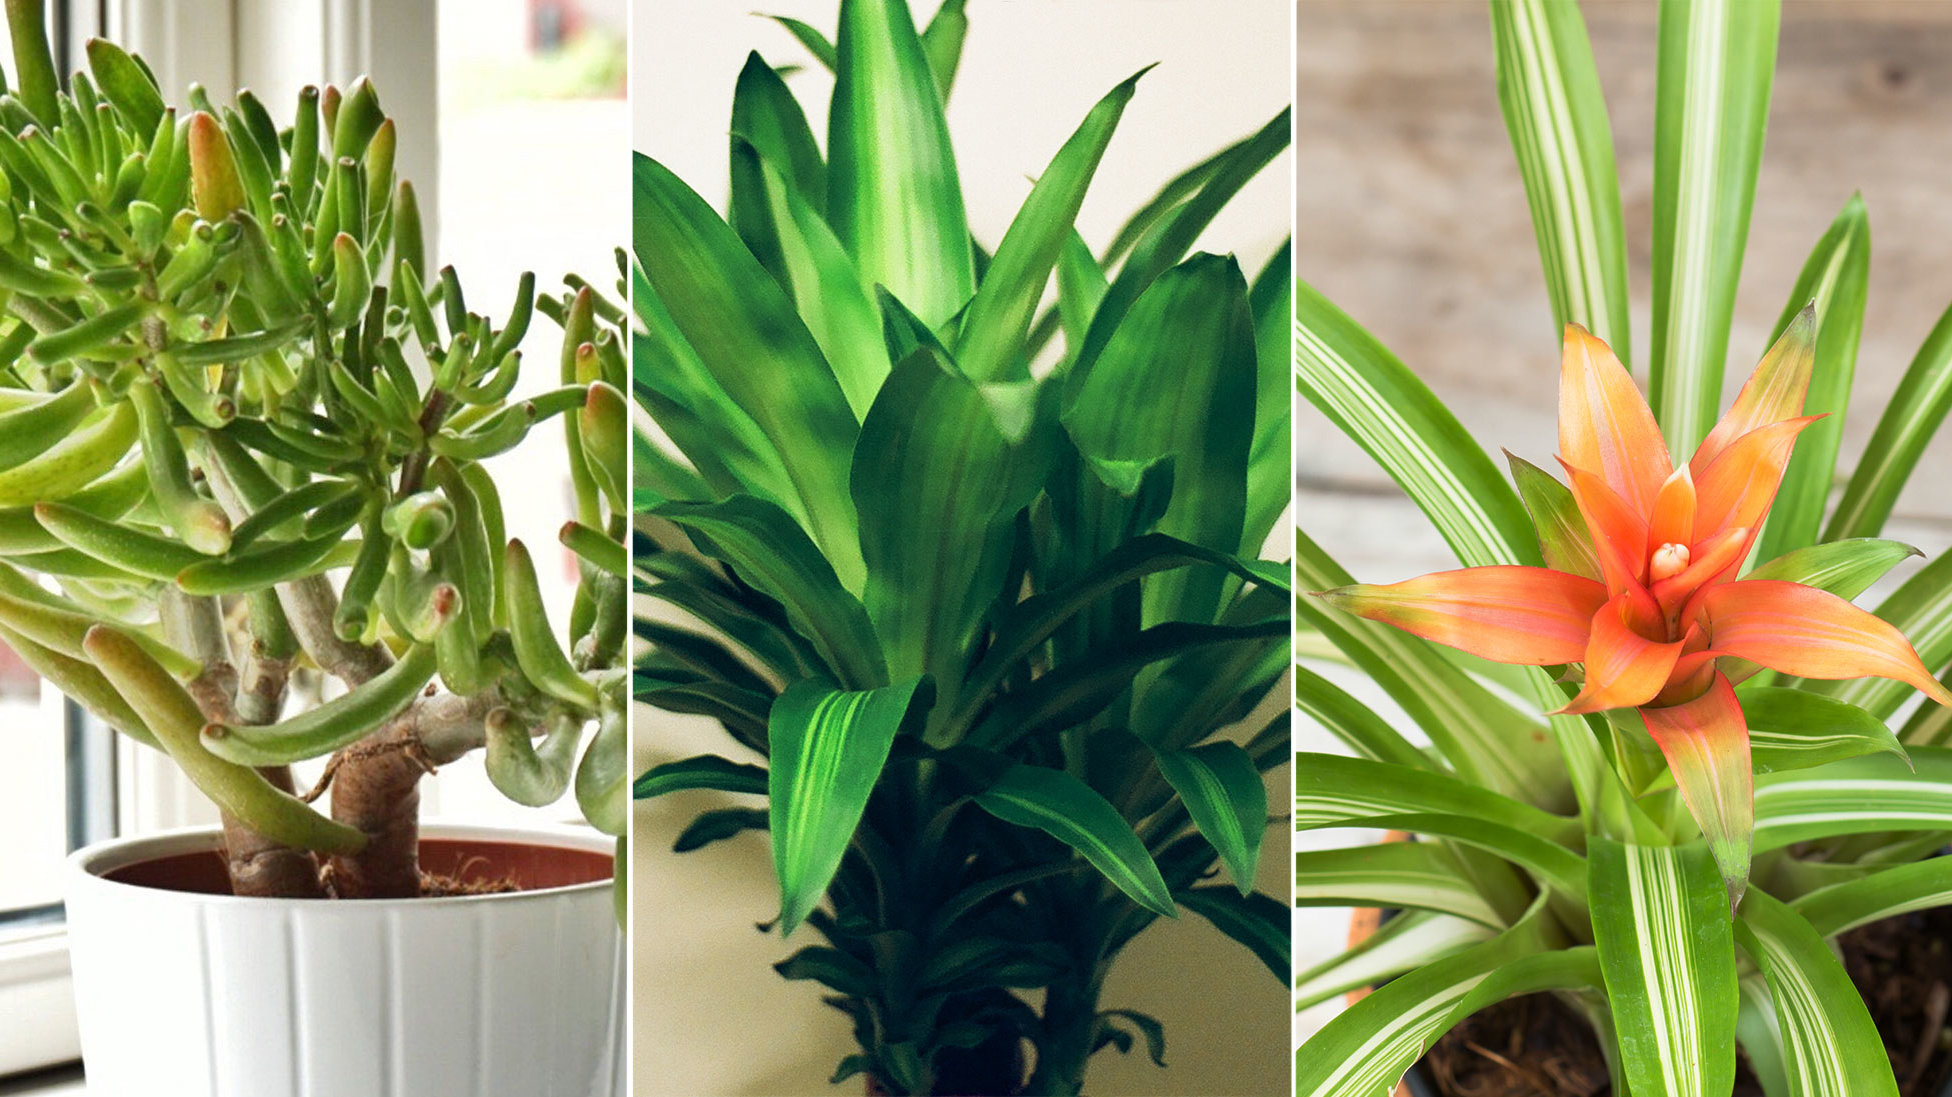 What kind of house plants smell unpleasant